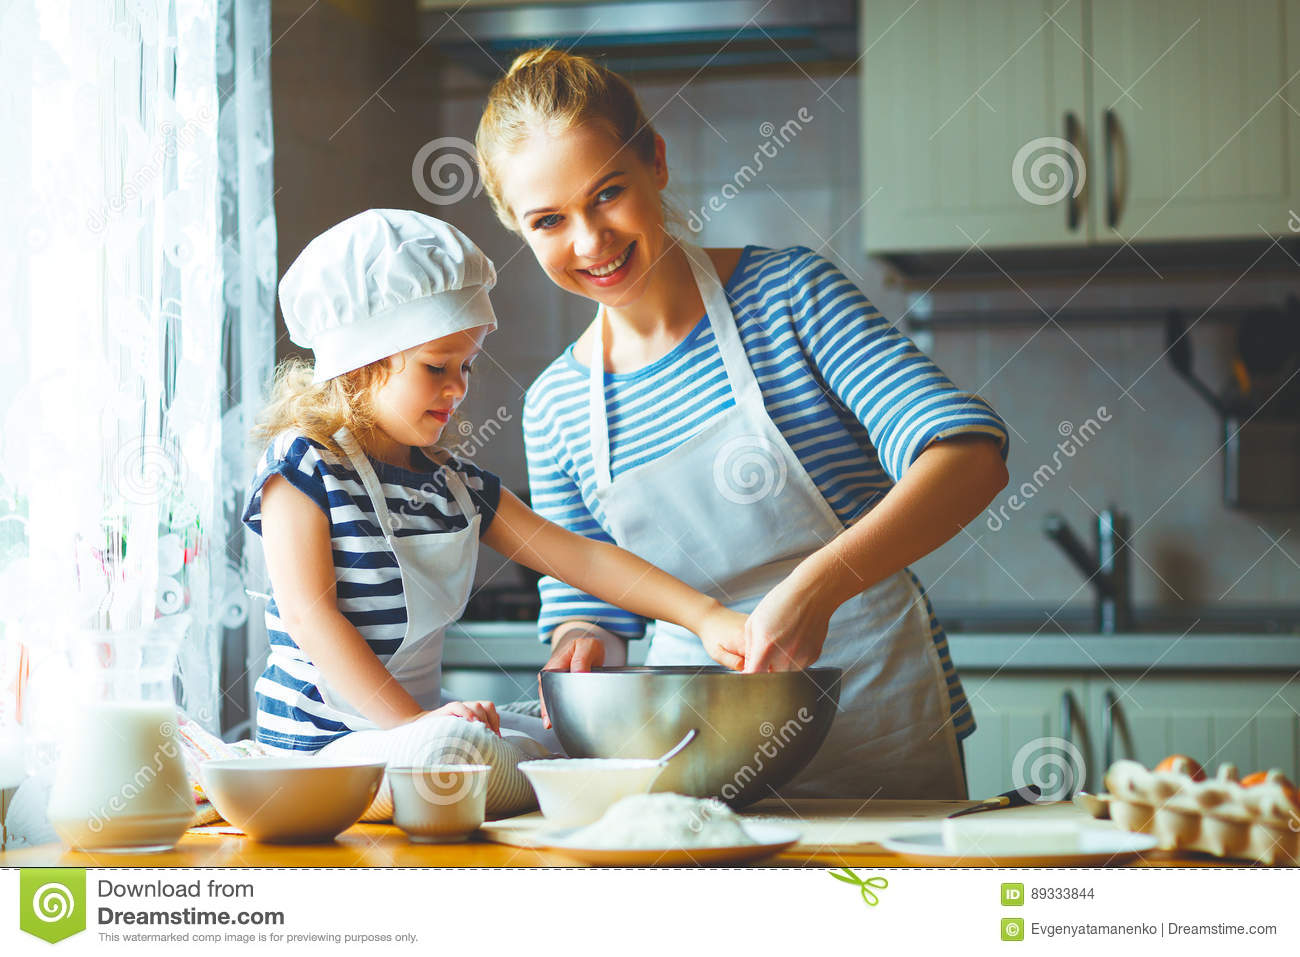 Happy family in kitchen - Happy Family In Kitchen Mother And Child Preparing Dough Bake Stock Photo